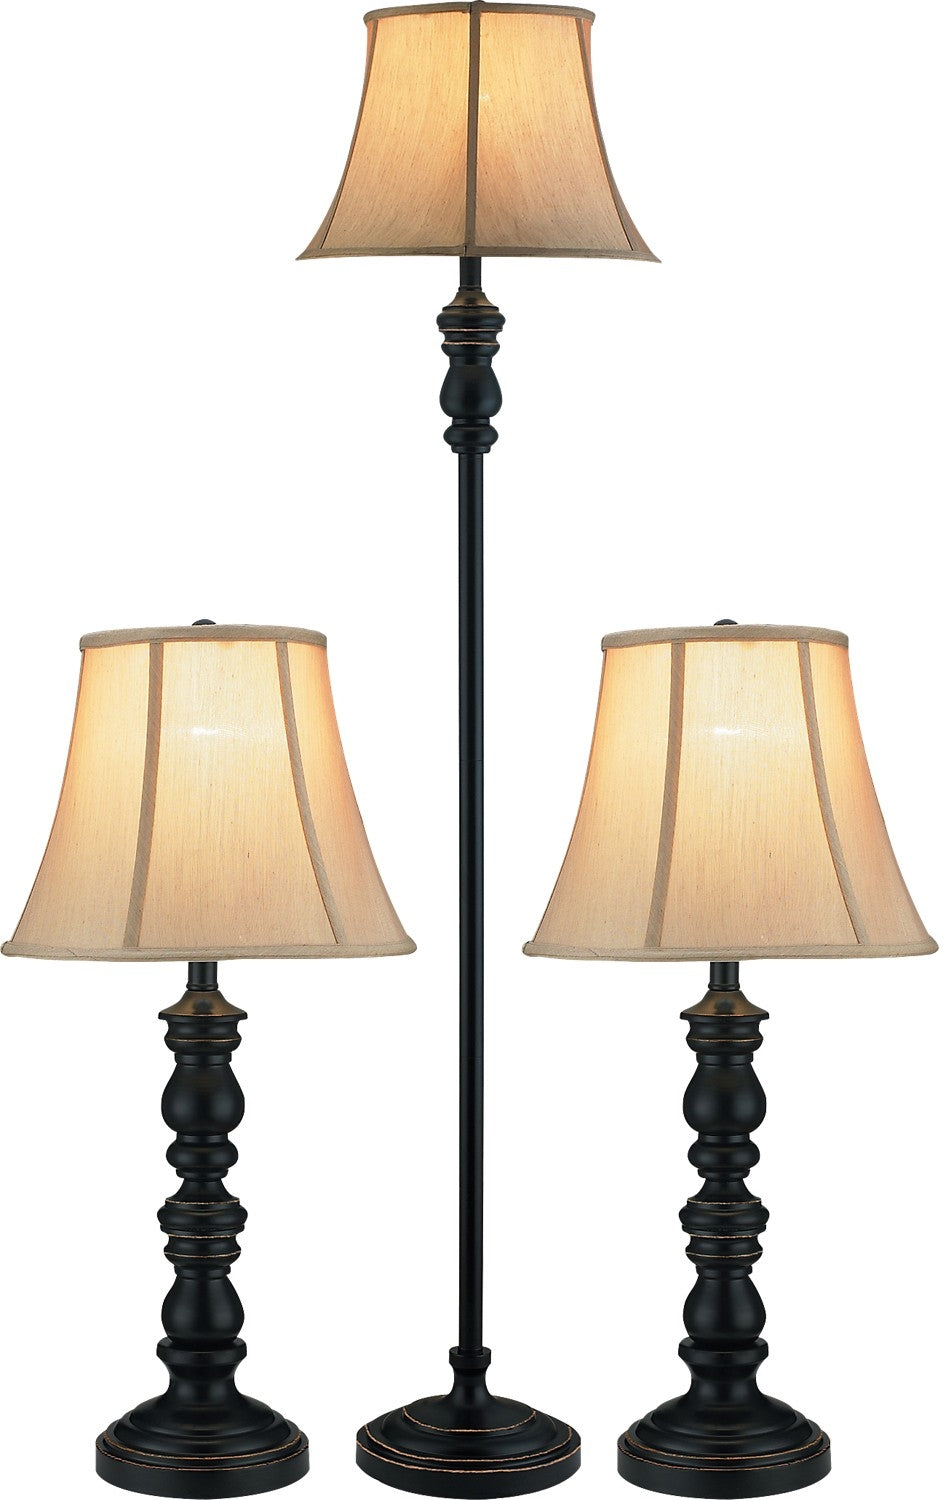 Black With Gold Accents 3 Piece Floor And Two Table Lamps Set The